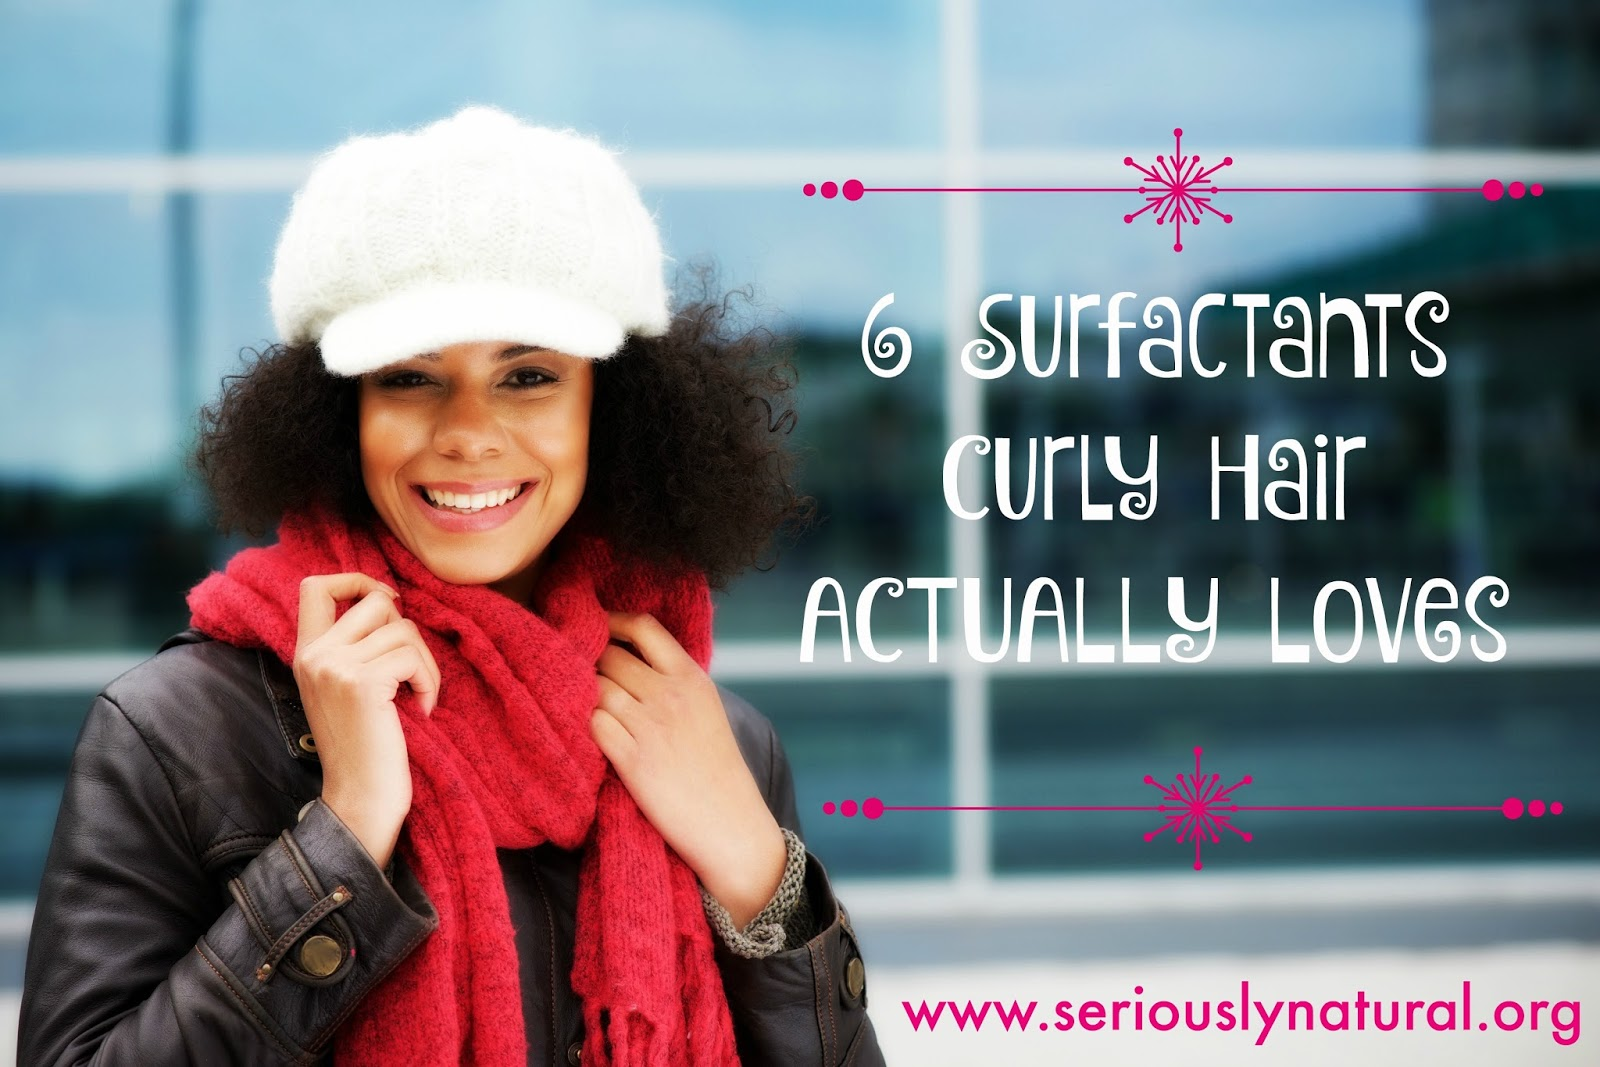 6 Surfactants Curly Hair ACTUALLY Loves